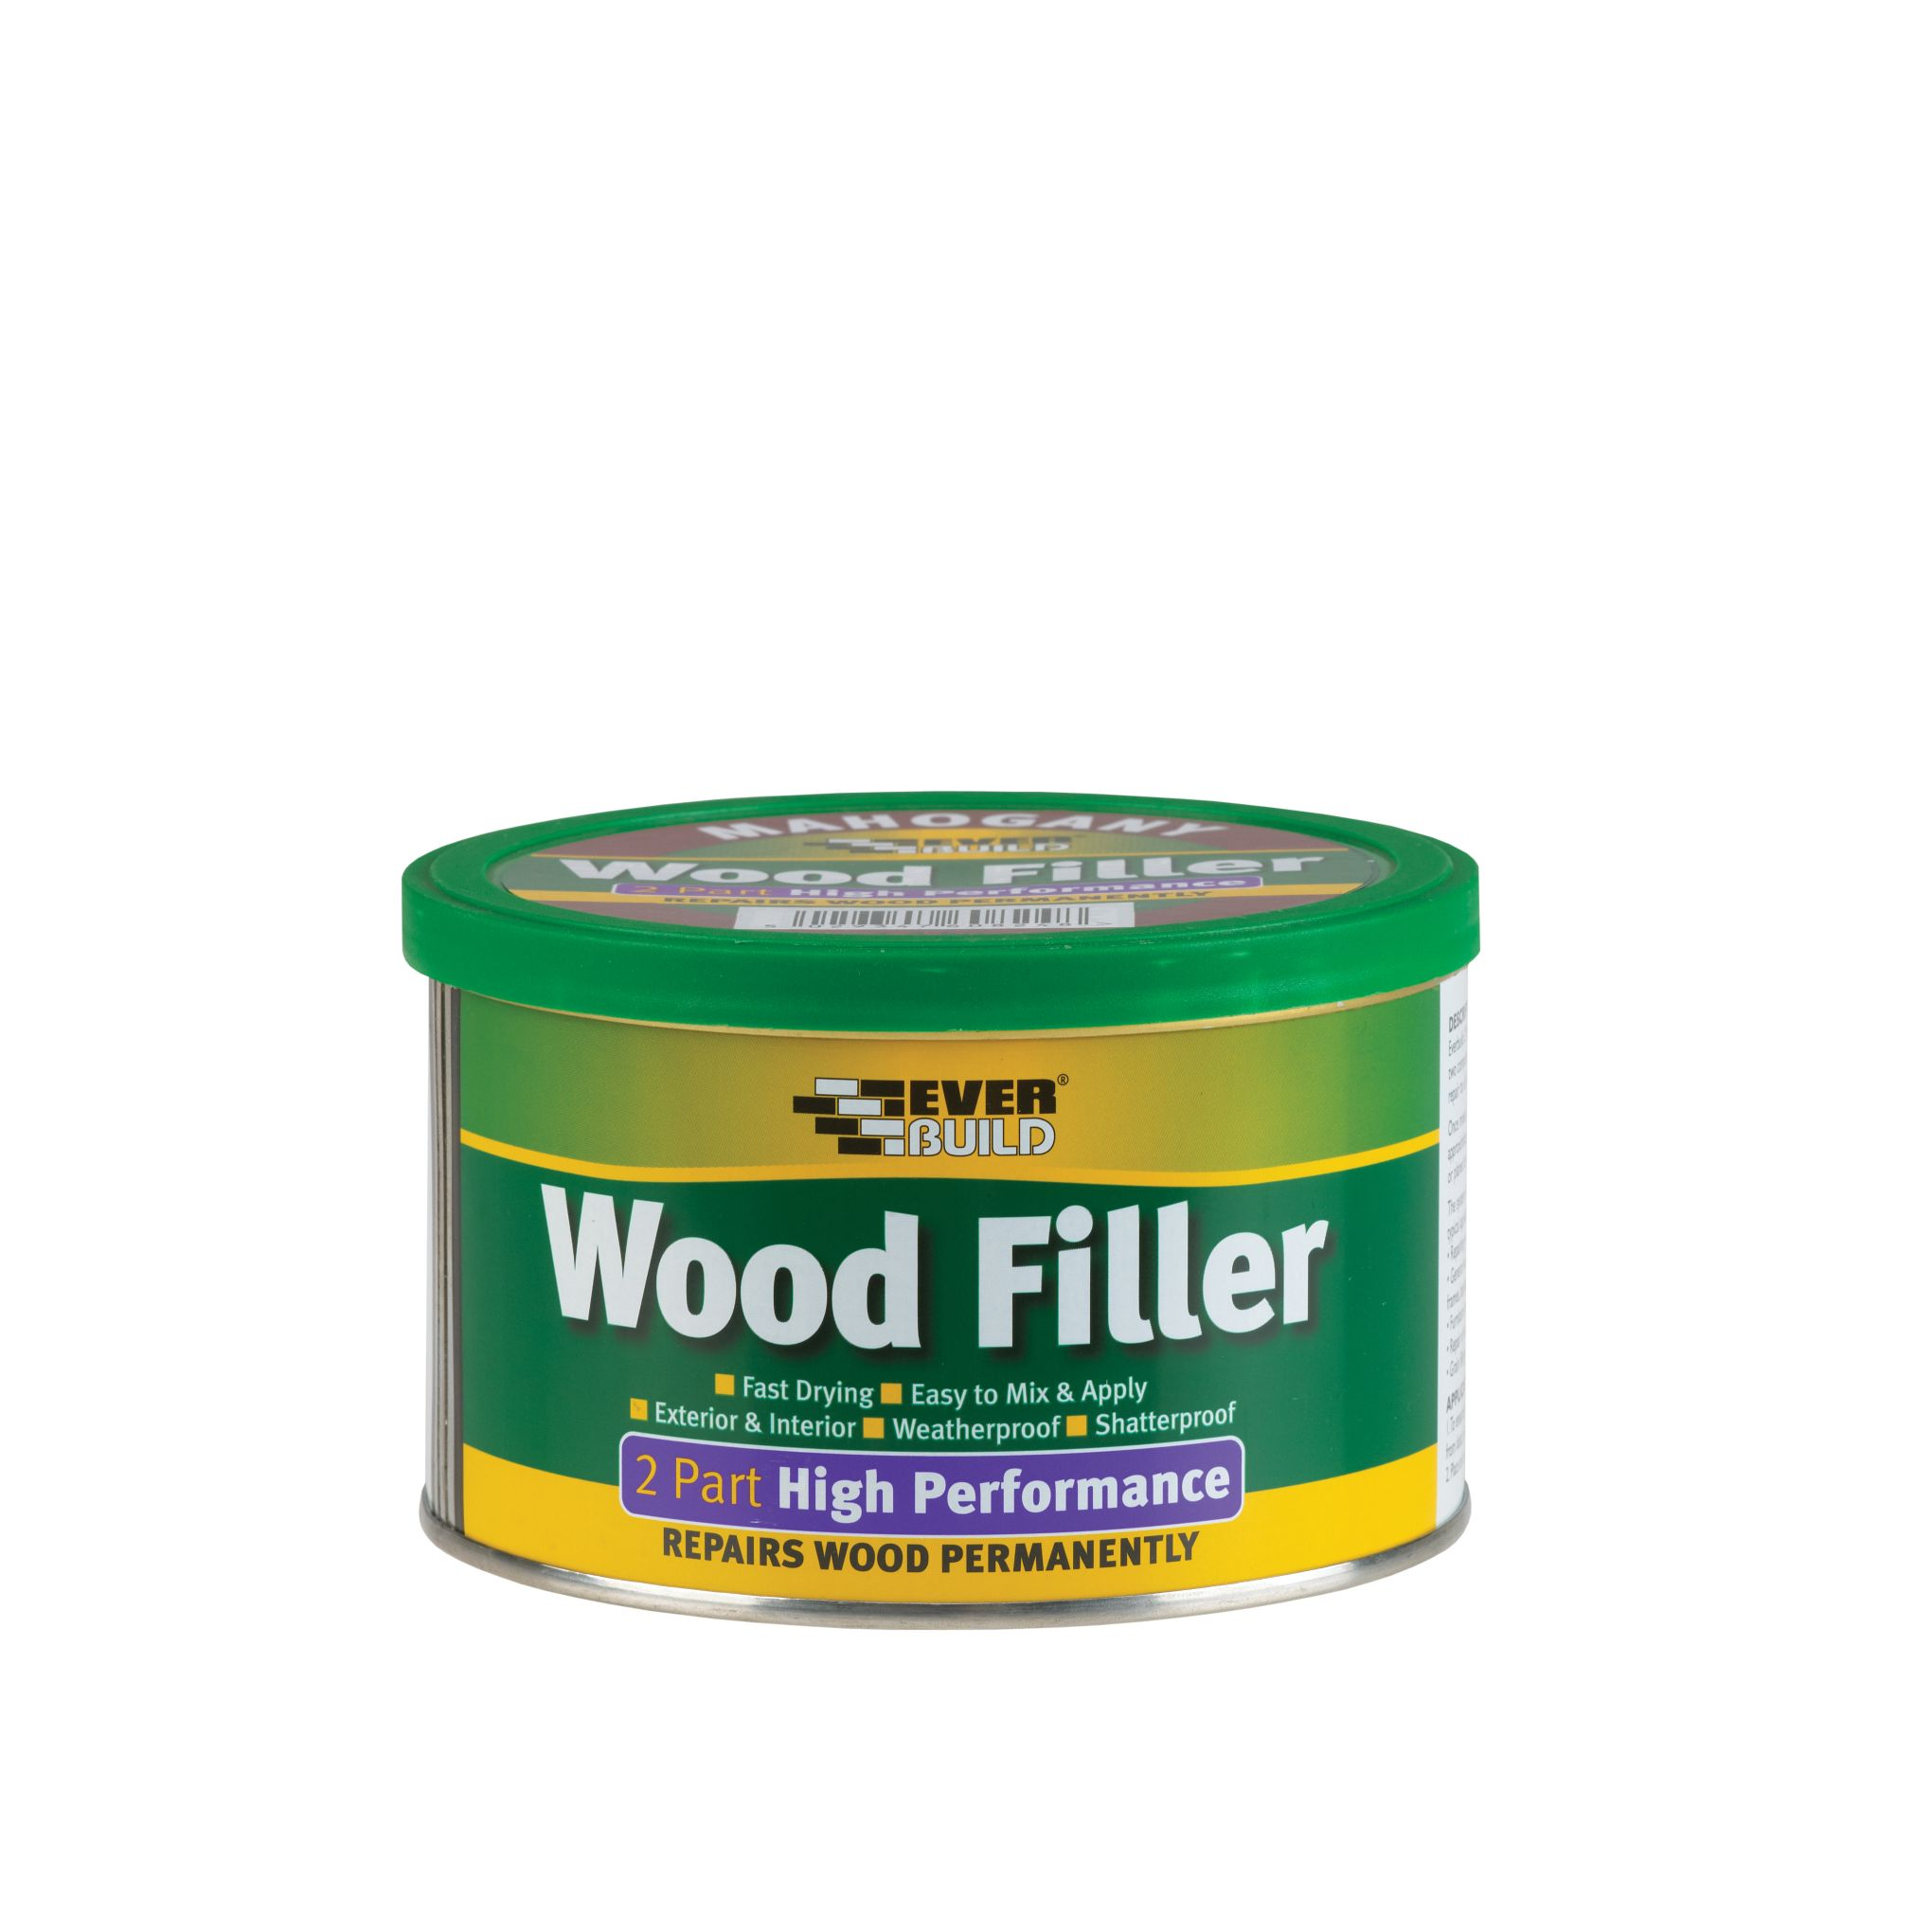 HIGH PERFORMANCE 2-PART WOOD FILLER 500G OAK